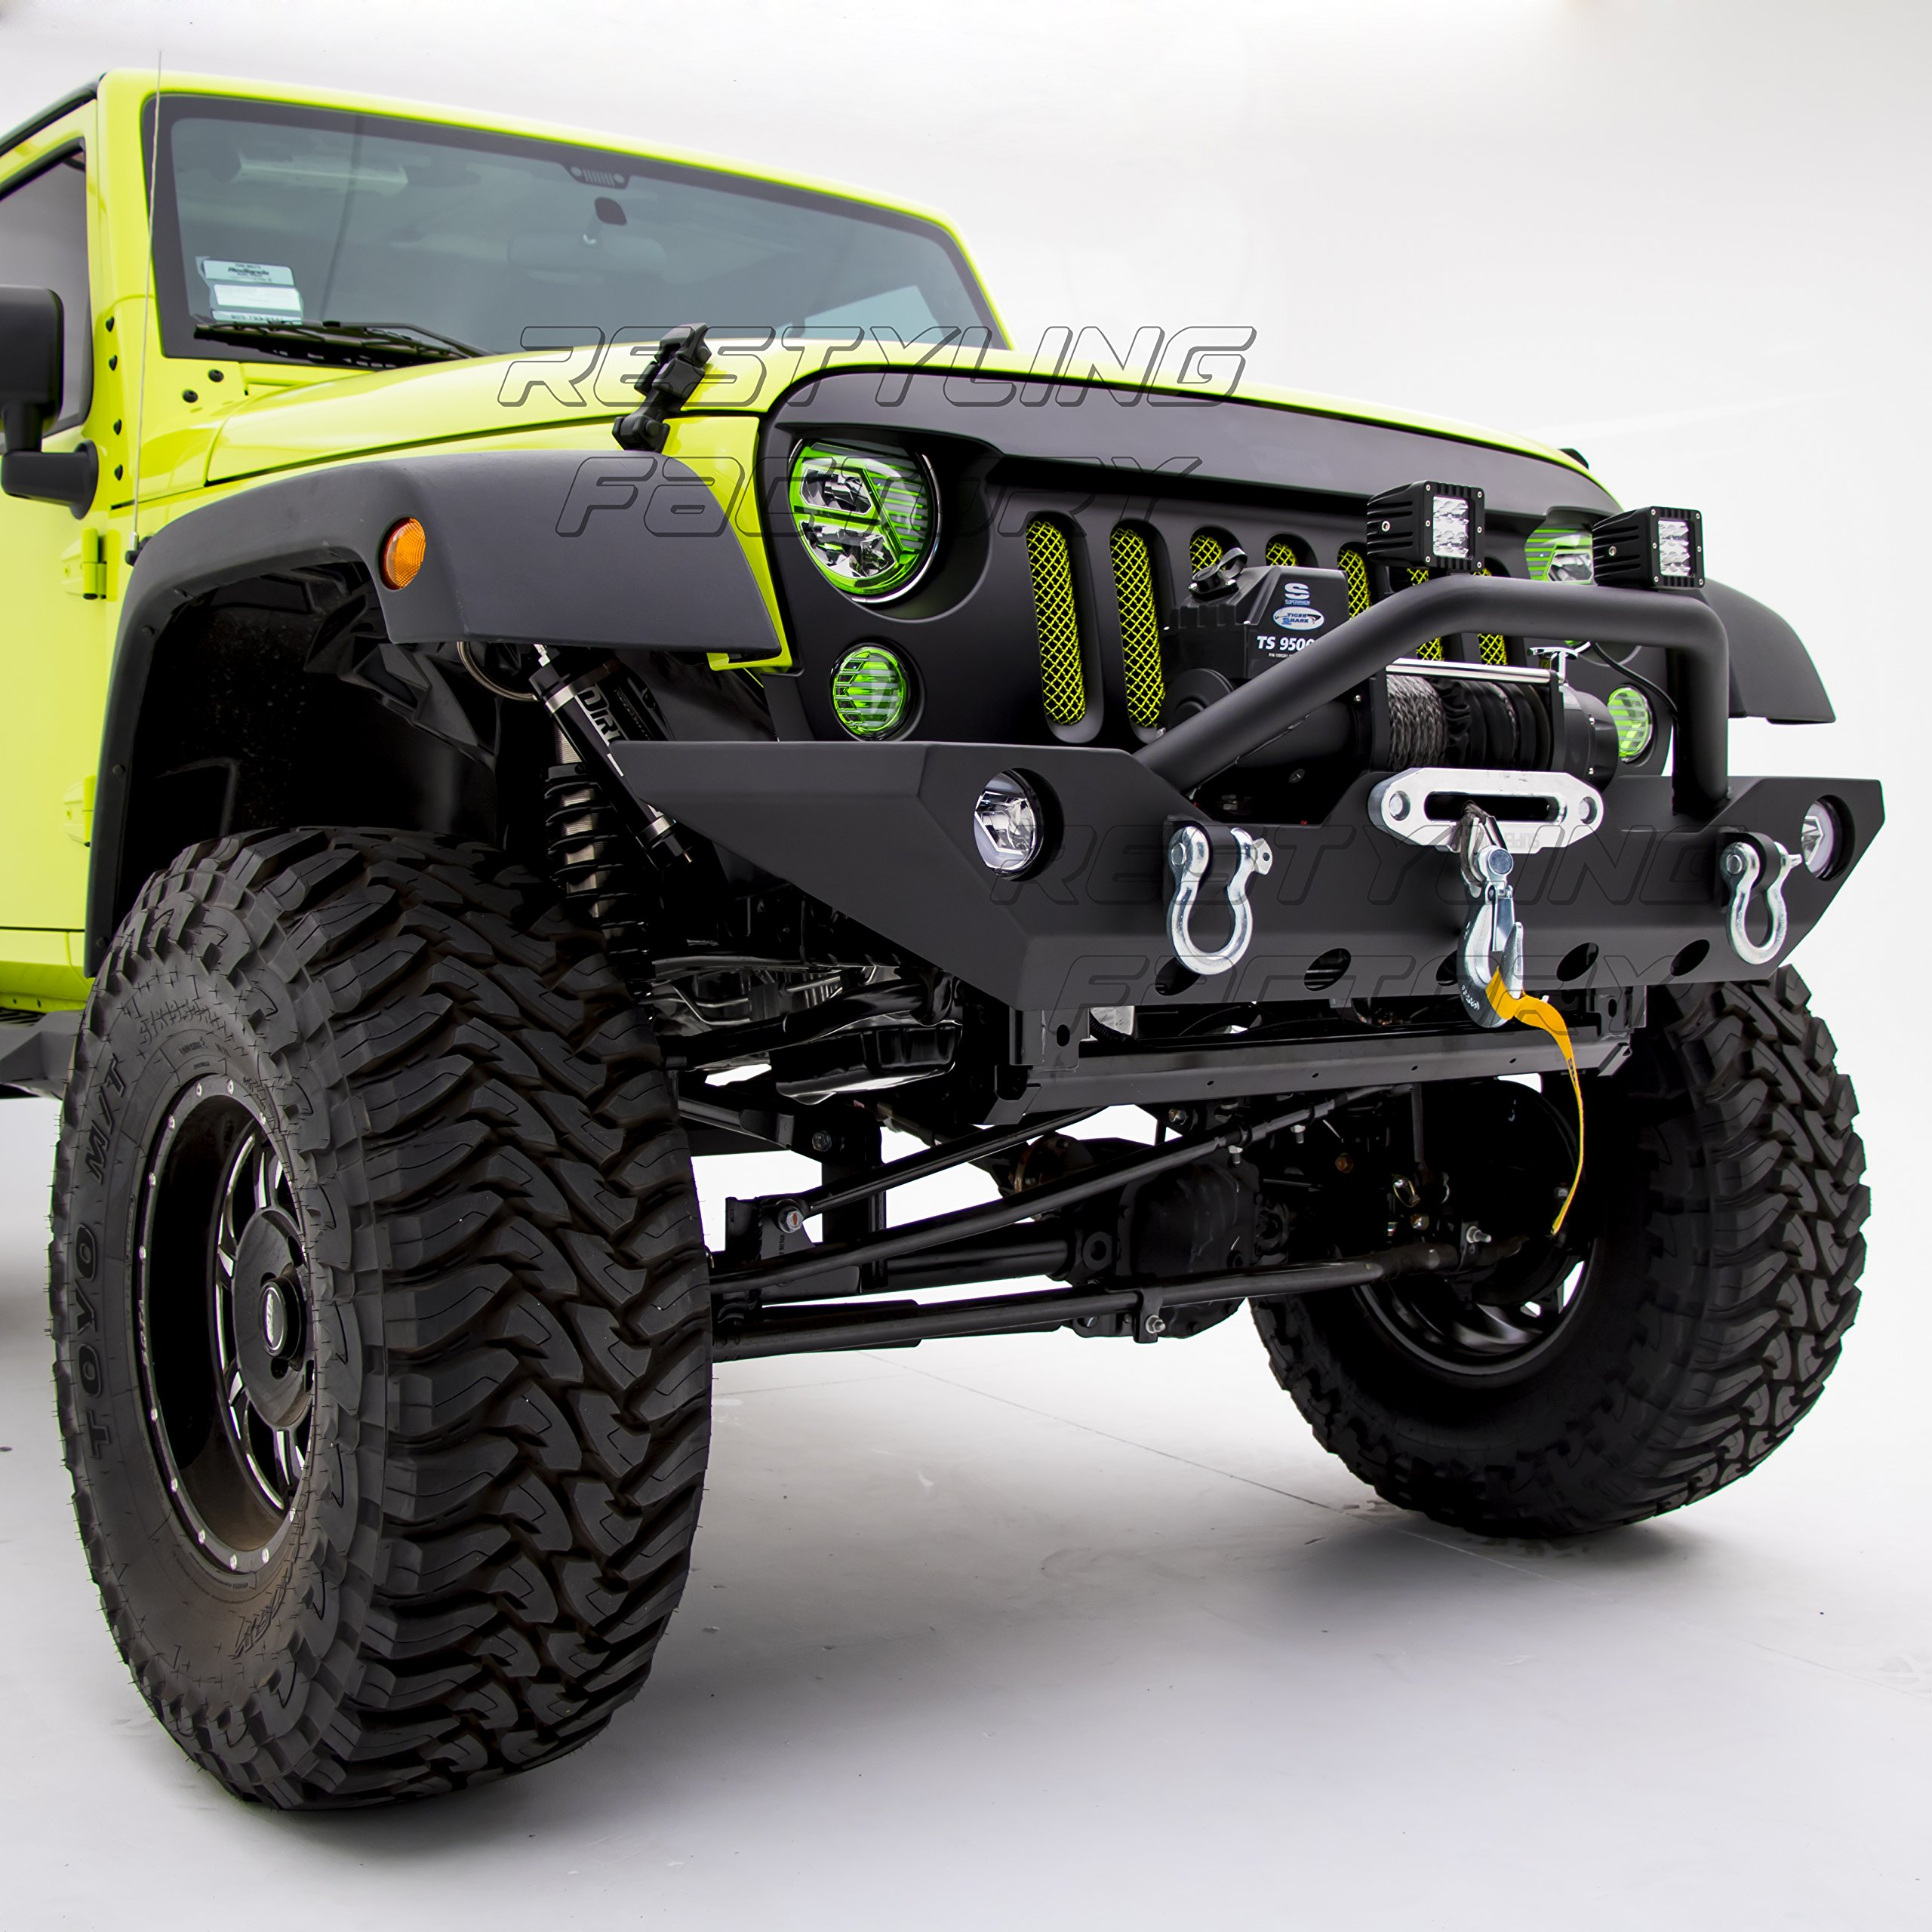 Jeep Wrangler Unlimited Front Bumper Diagram Great Installation Of Fender 2013 With Winch Amazon Com Rh Cover Cap Awesome